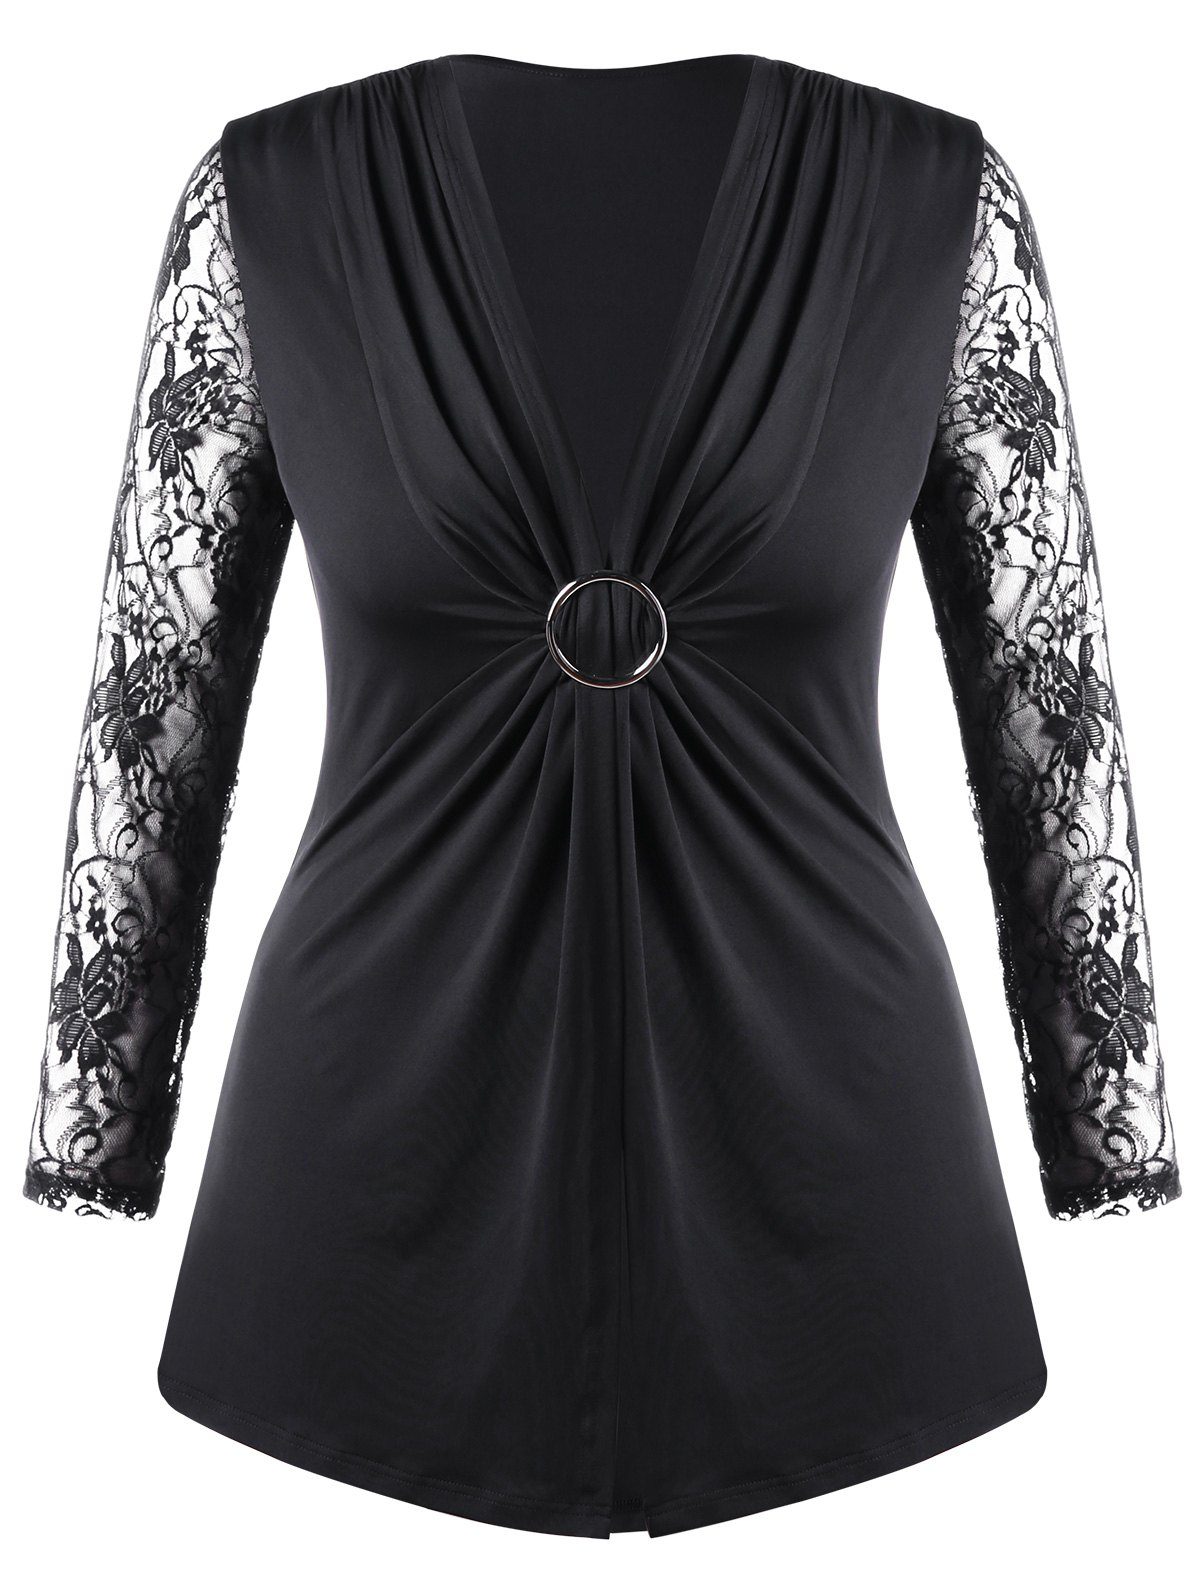 Plus Size Lace Trim Twist Front TopWOMEN<br><br>Size: 2XL; Color: BLACK; Material: Polyester,Spandex; Shirt Length: Long; Sleeve Length: Full; Collar: Plunging Neck; Style: Fashion; Season: Fall,Spring,Summer; Embellishment: Lace; Pattern Type: Floral; Weight: 0.3000kg; Package Contents: 1 x Top;